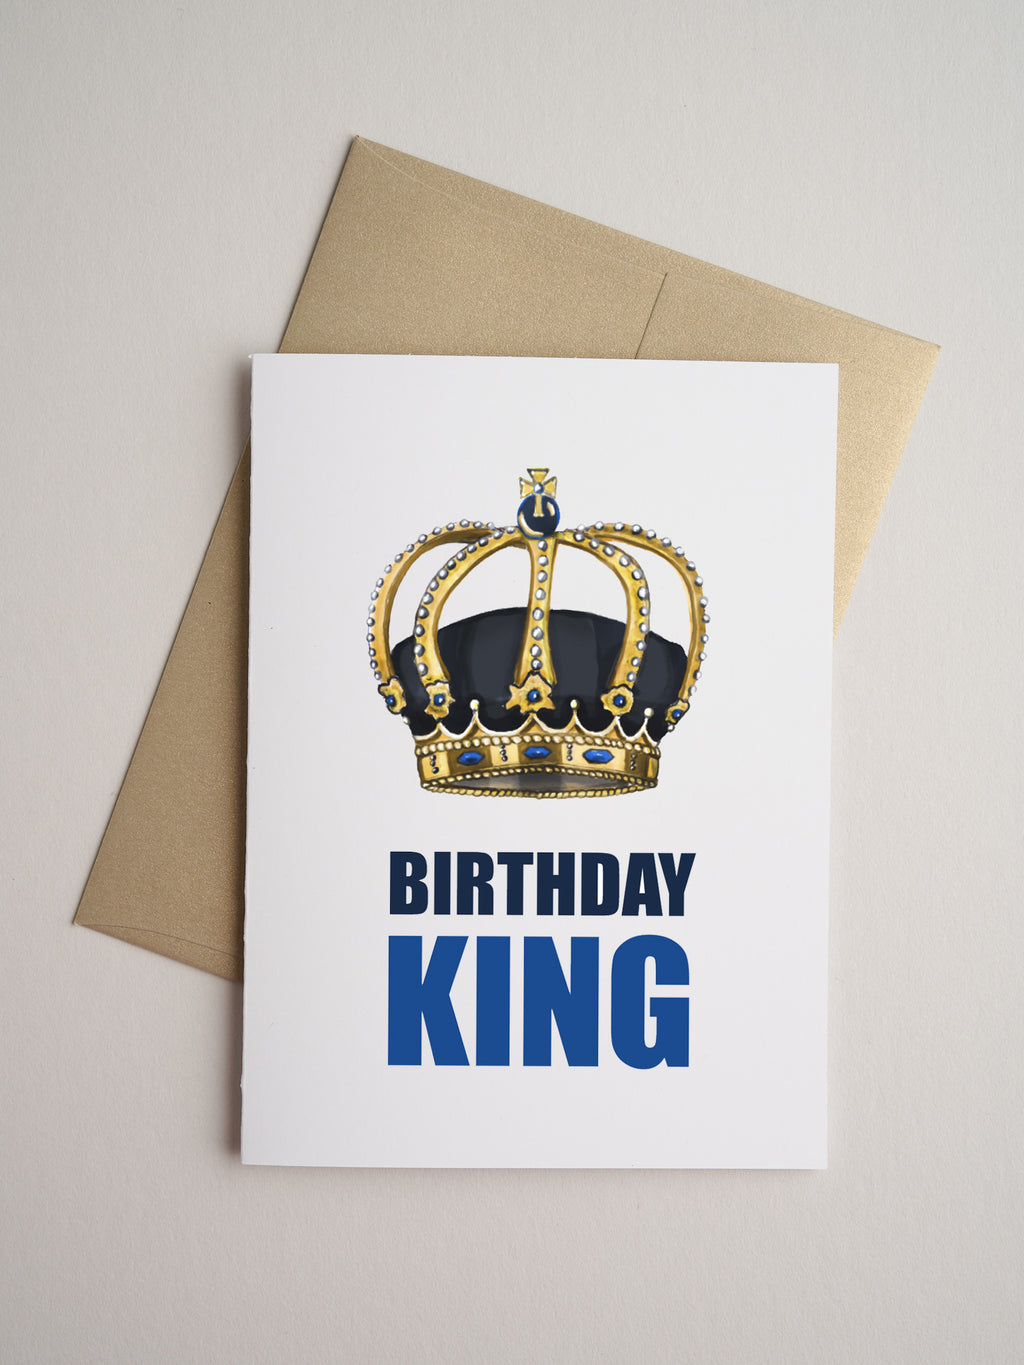 BD-21-01 | Birthday King